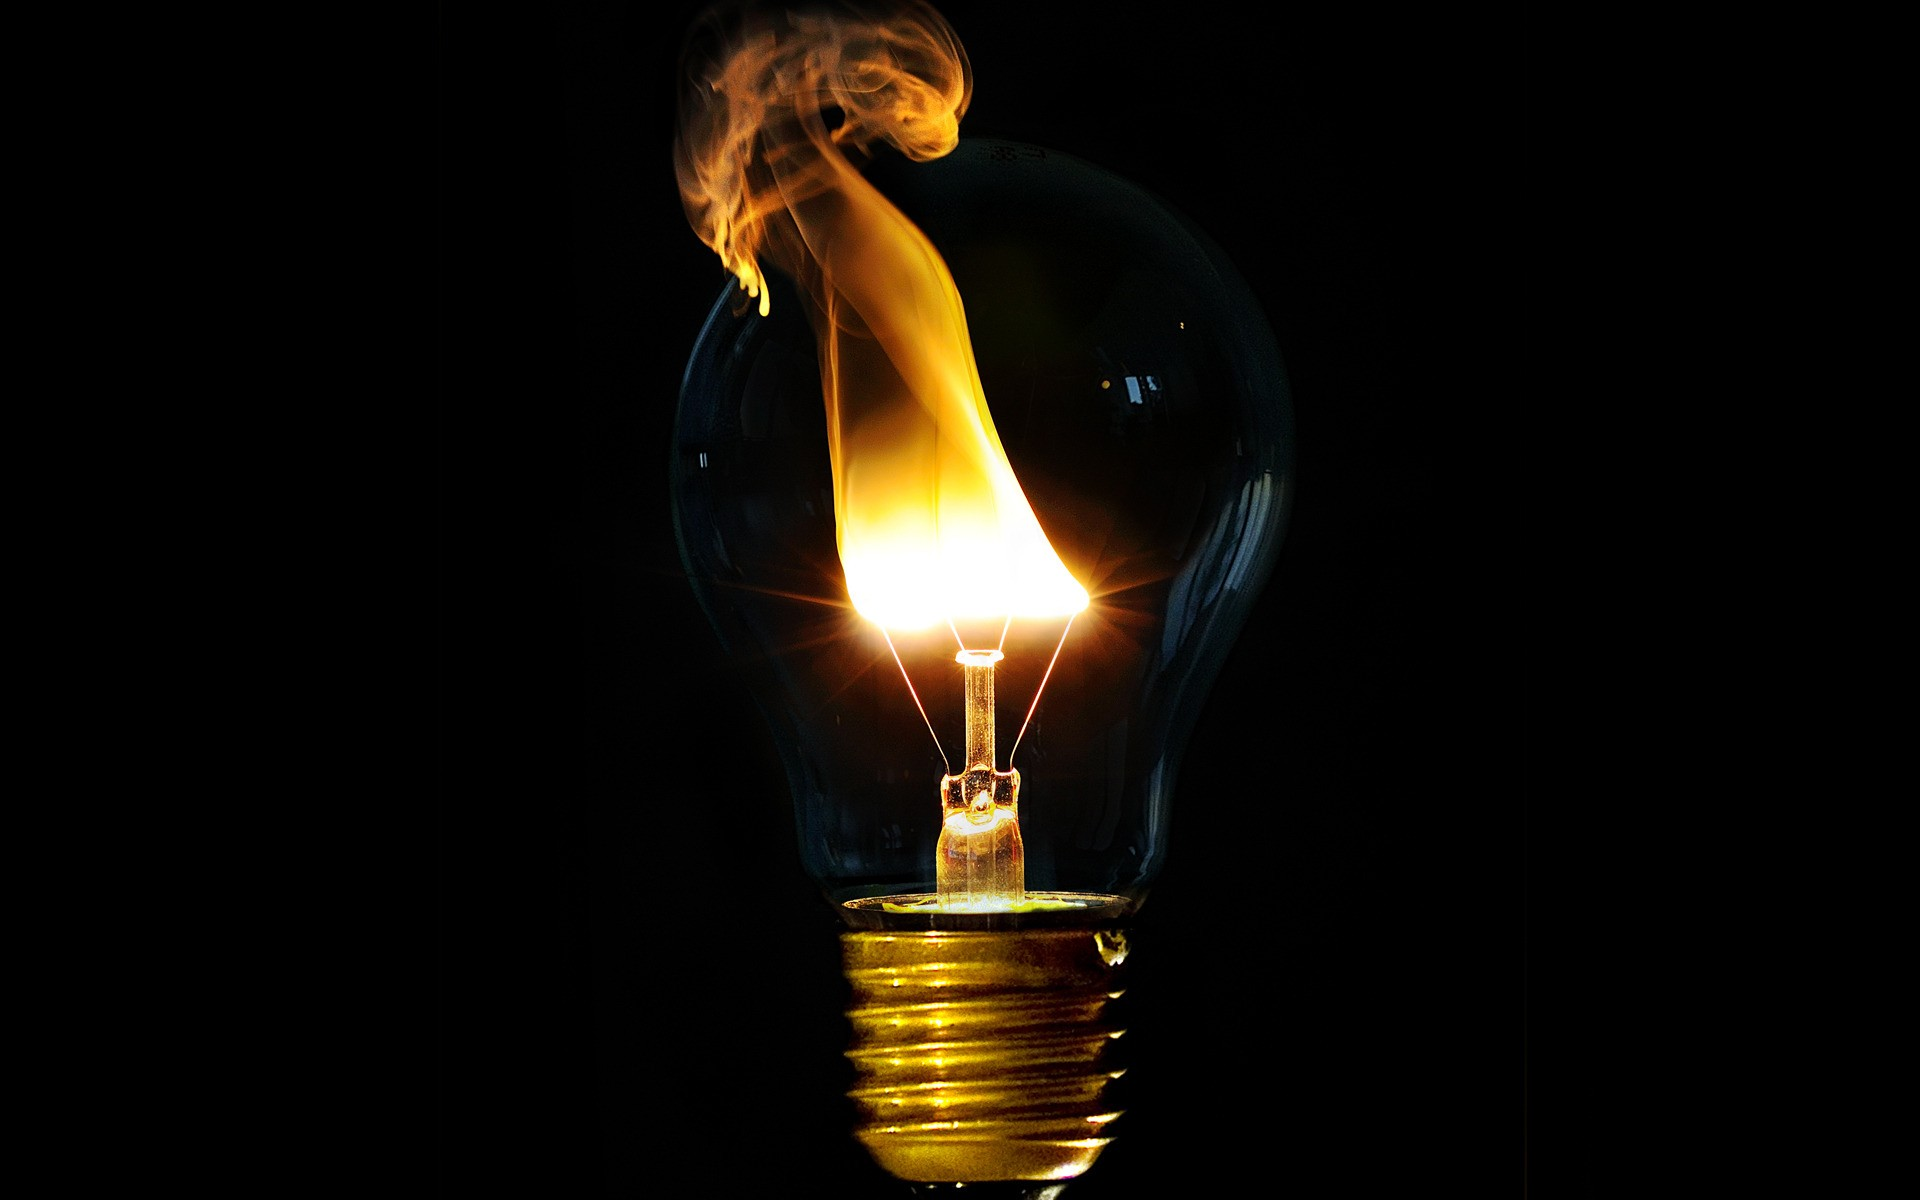 Light Fire Light Bulbs Black Background Wallpaper 1920x1200 15439 Wallpaperup